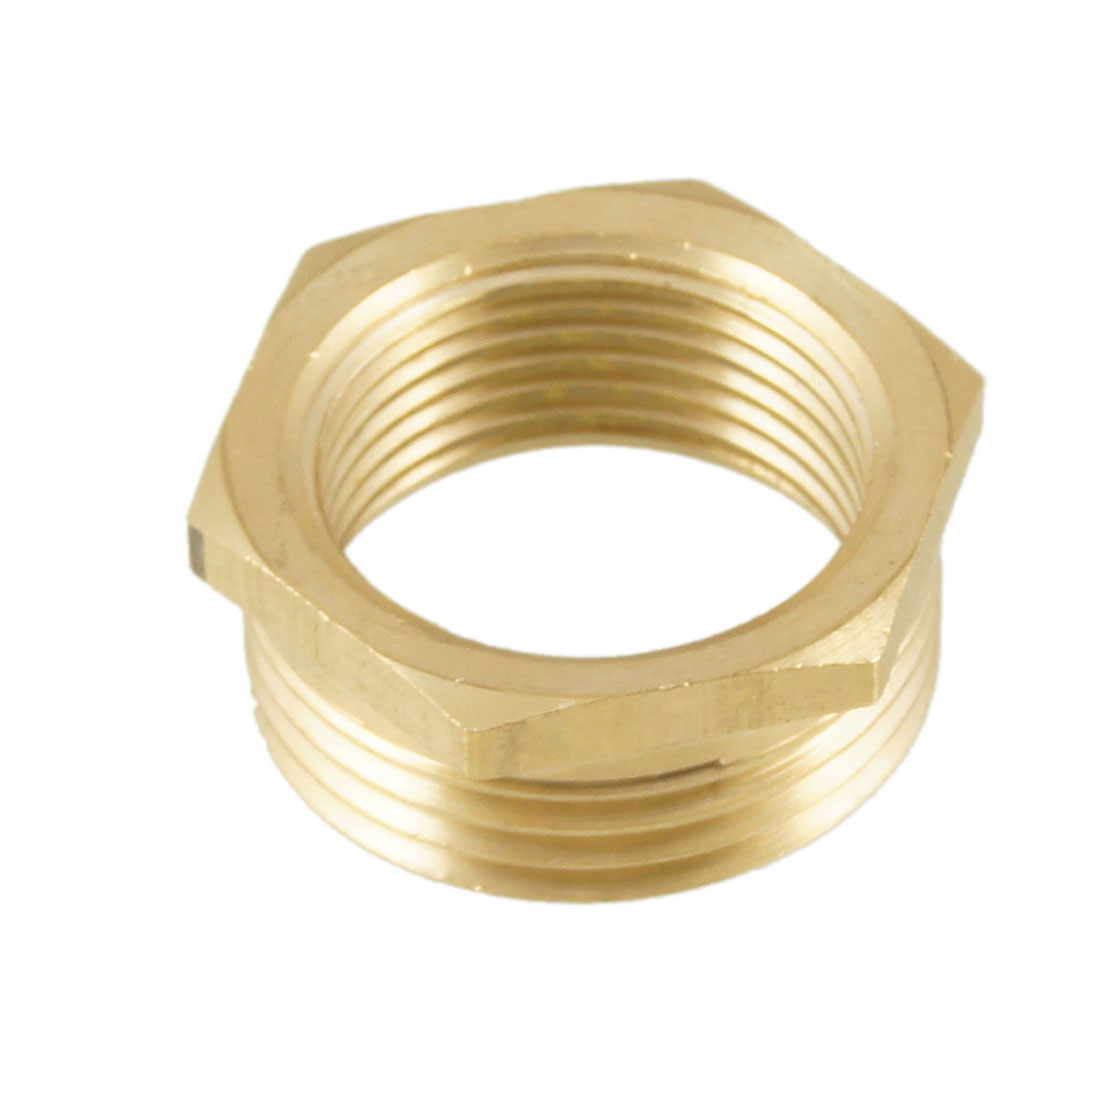 1PT Male to 3/4PT Female Hex Thread Bushing Piping Connector Adapter